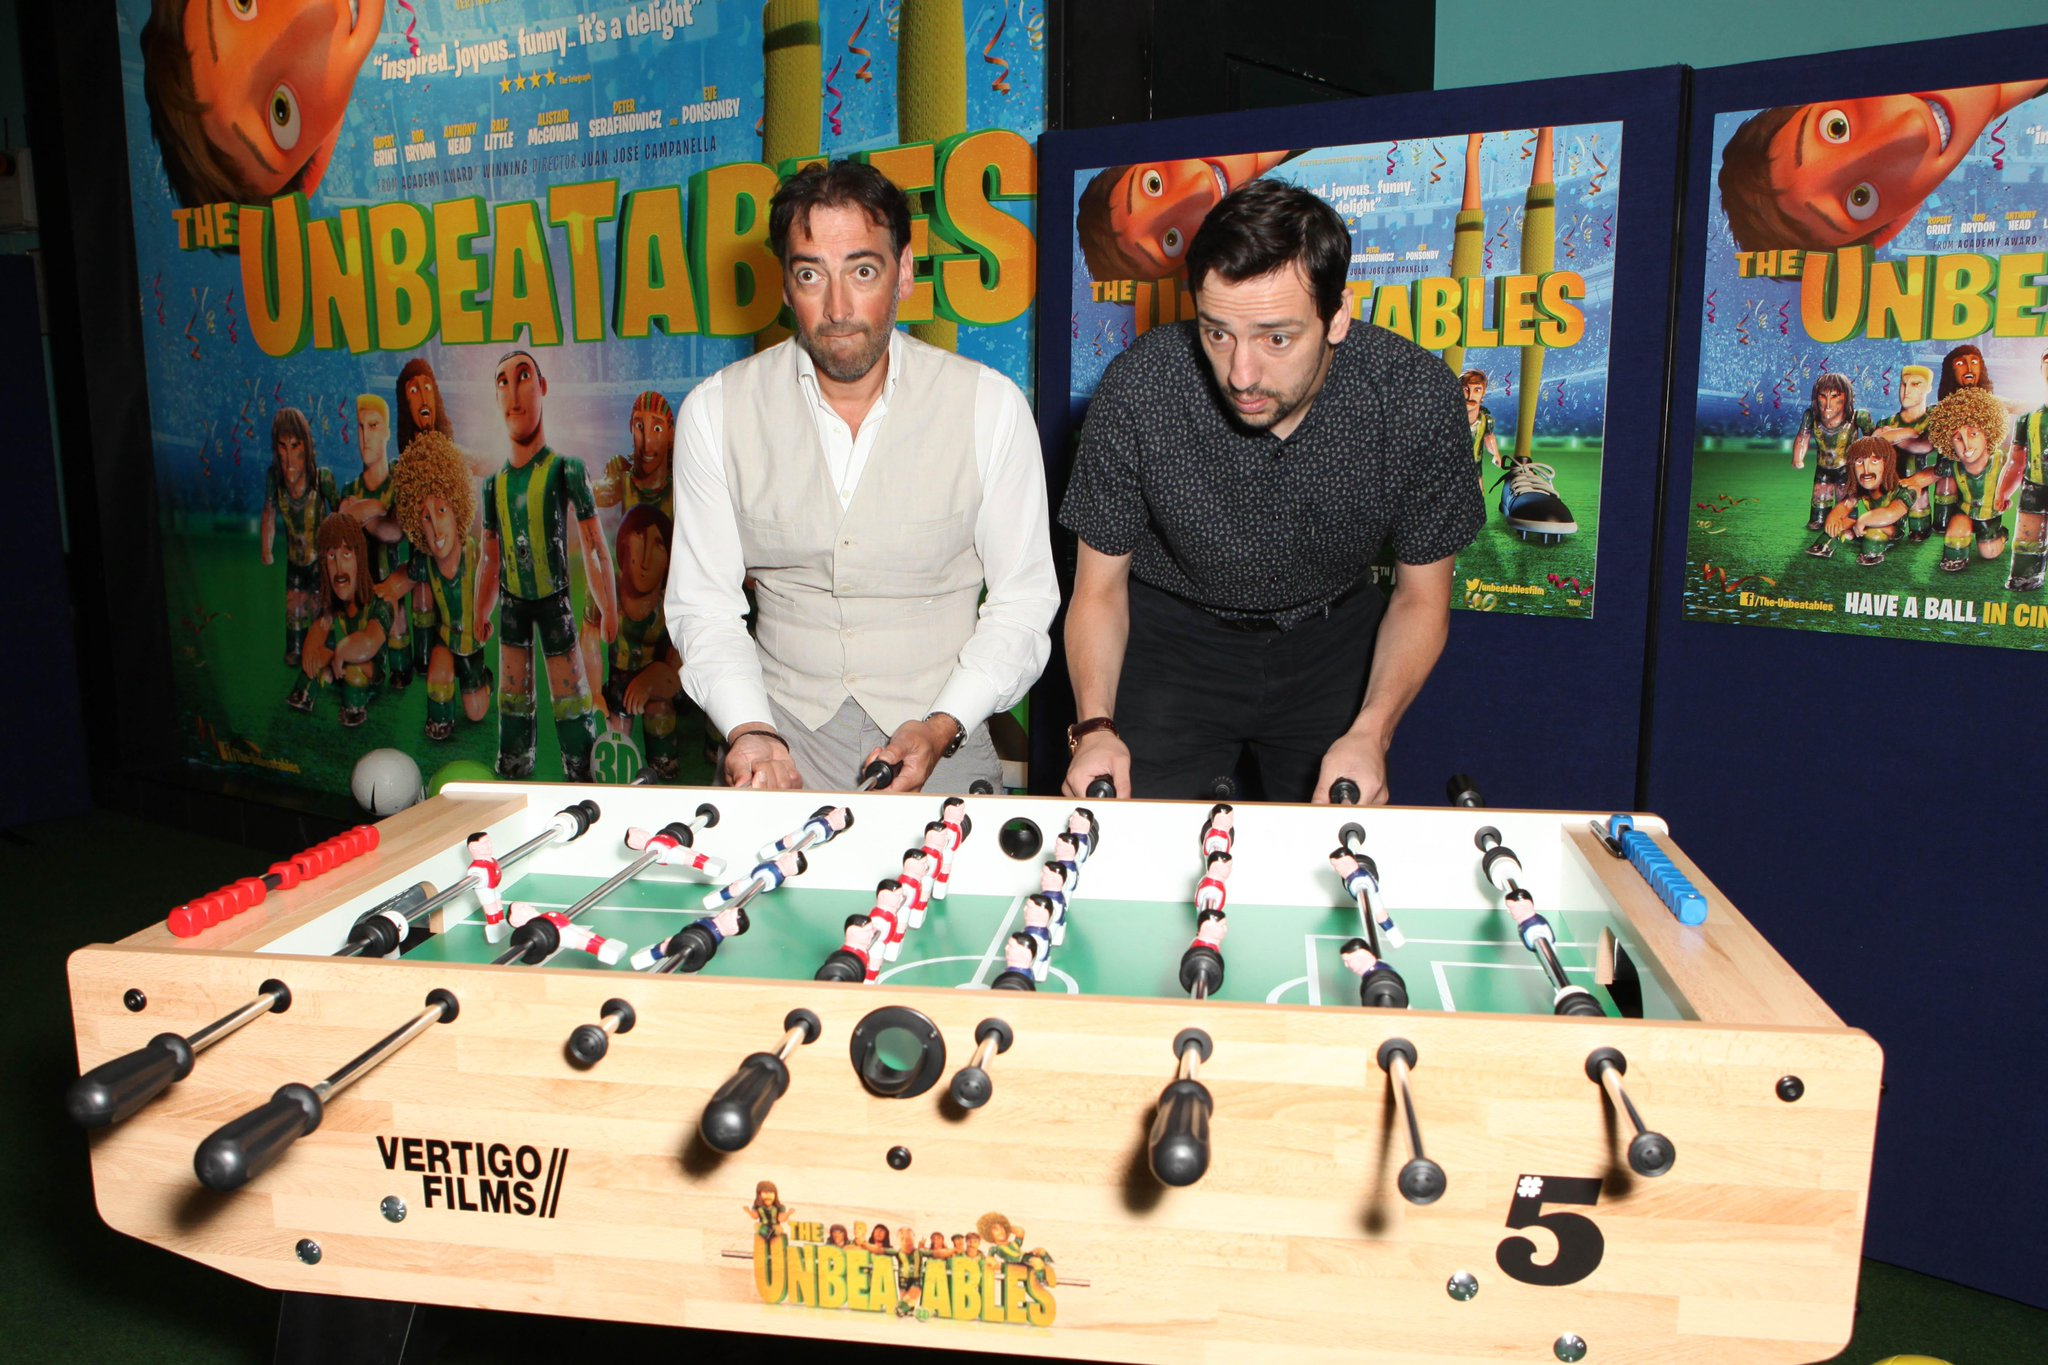 RT @5mag: To celebrate the @UnbeatablesFilm release this Friday, we're giving away a Foosball Table! http://t.co/yG0Per2M6y http://t.co/qBG…